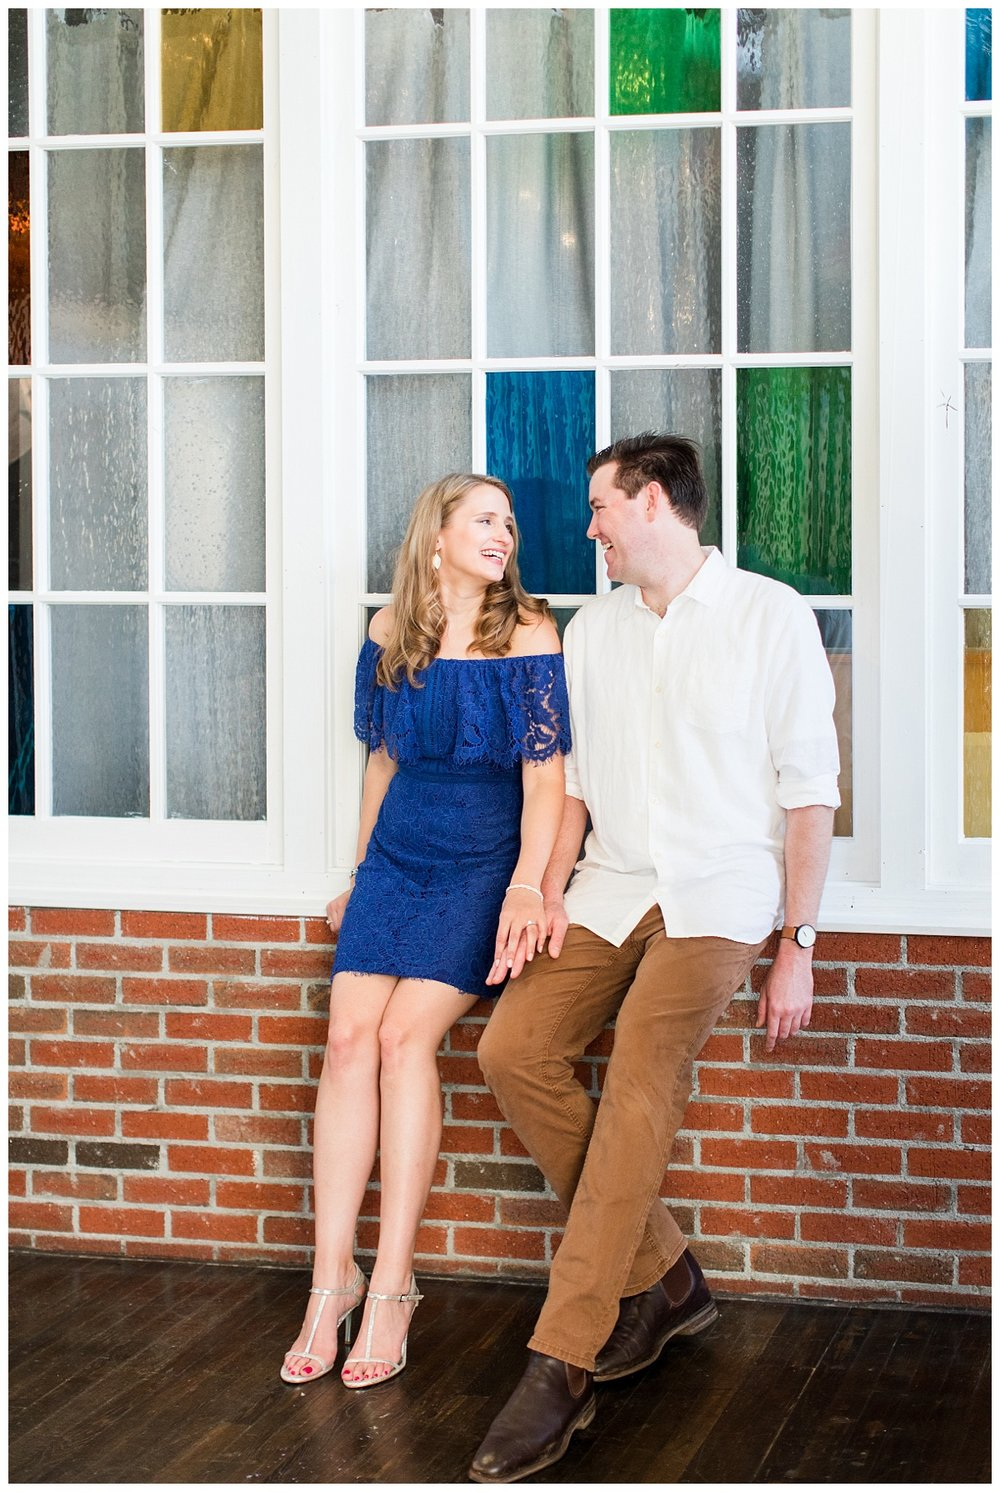 Engagement Pictures_KIm and Hamish_Abby Breaux Photography_Atlanta_Ponce City Market_Jackson Street Bridge_0035.jpg